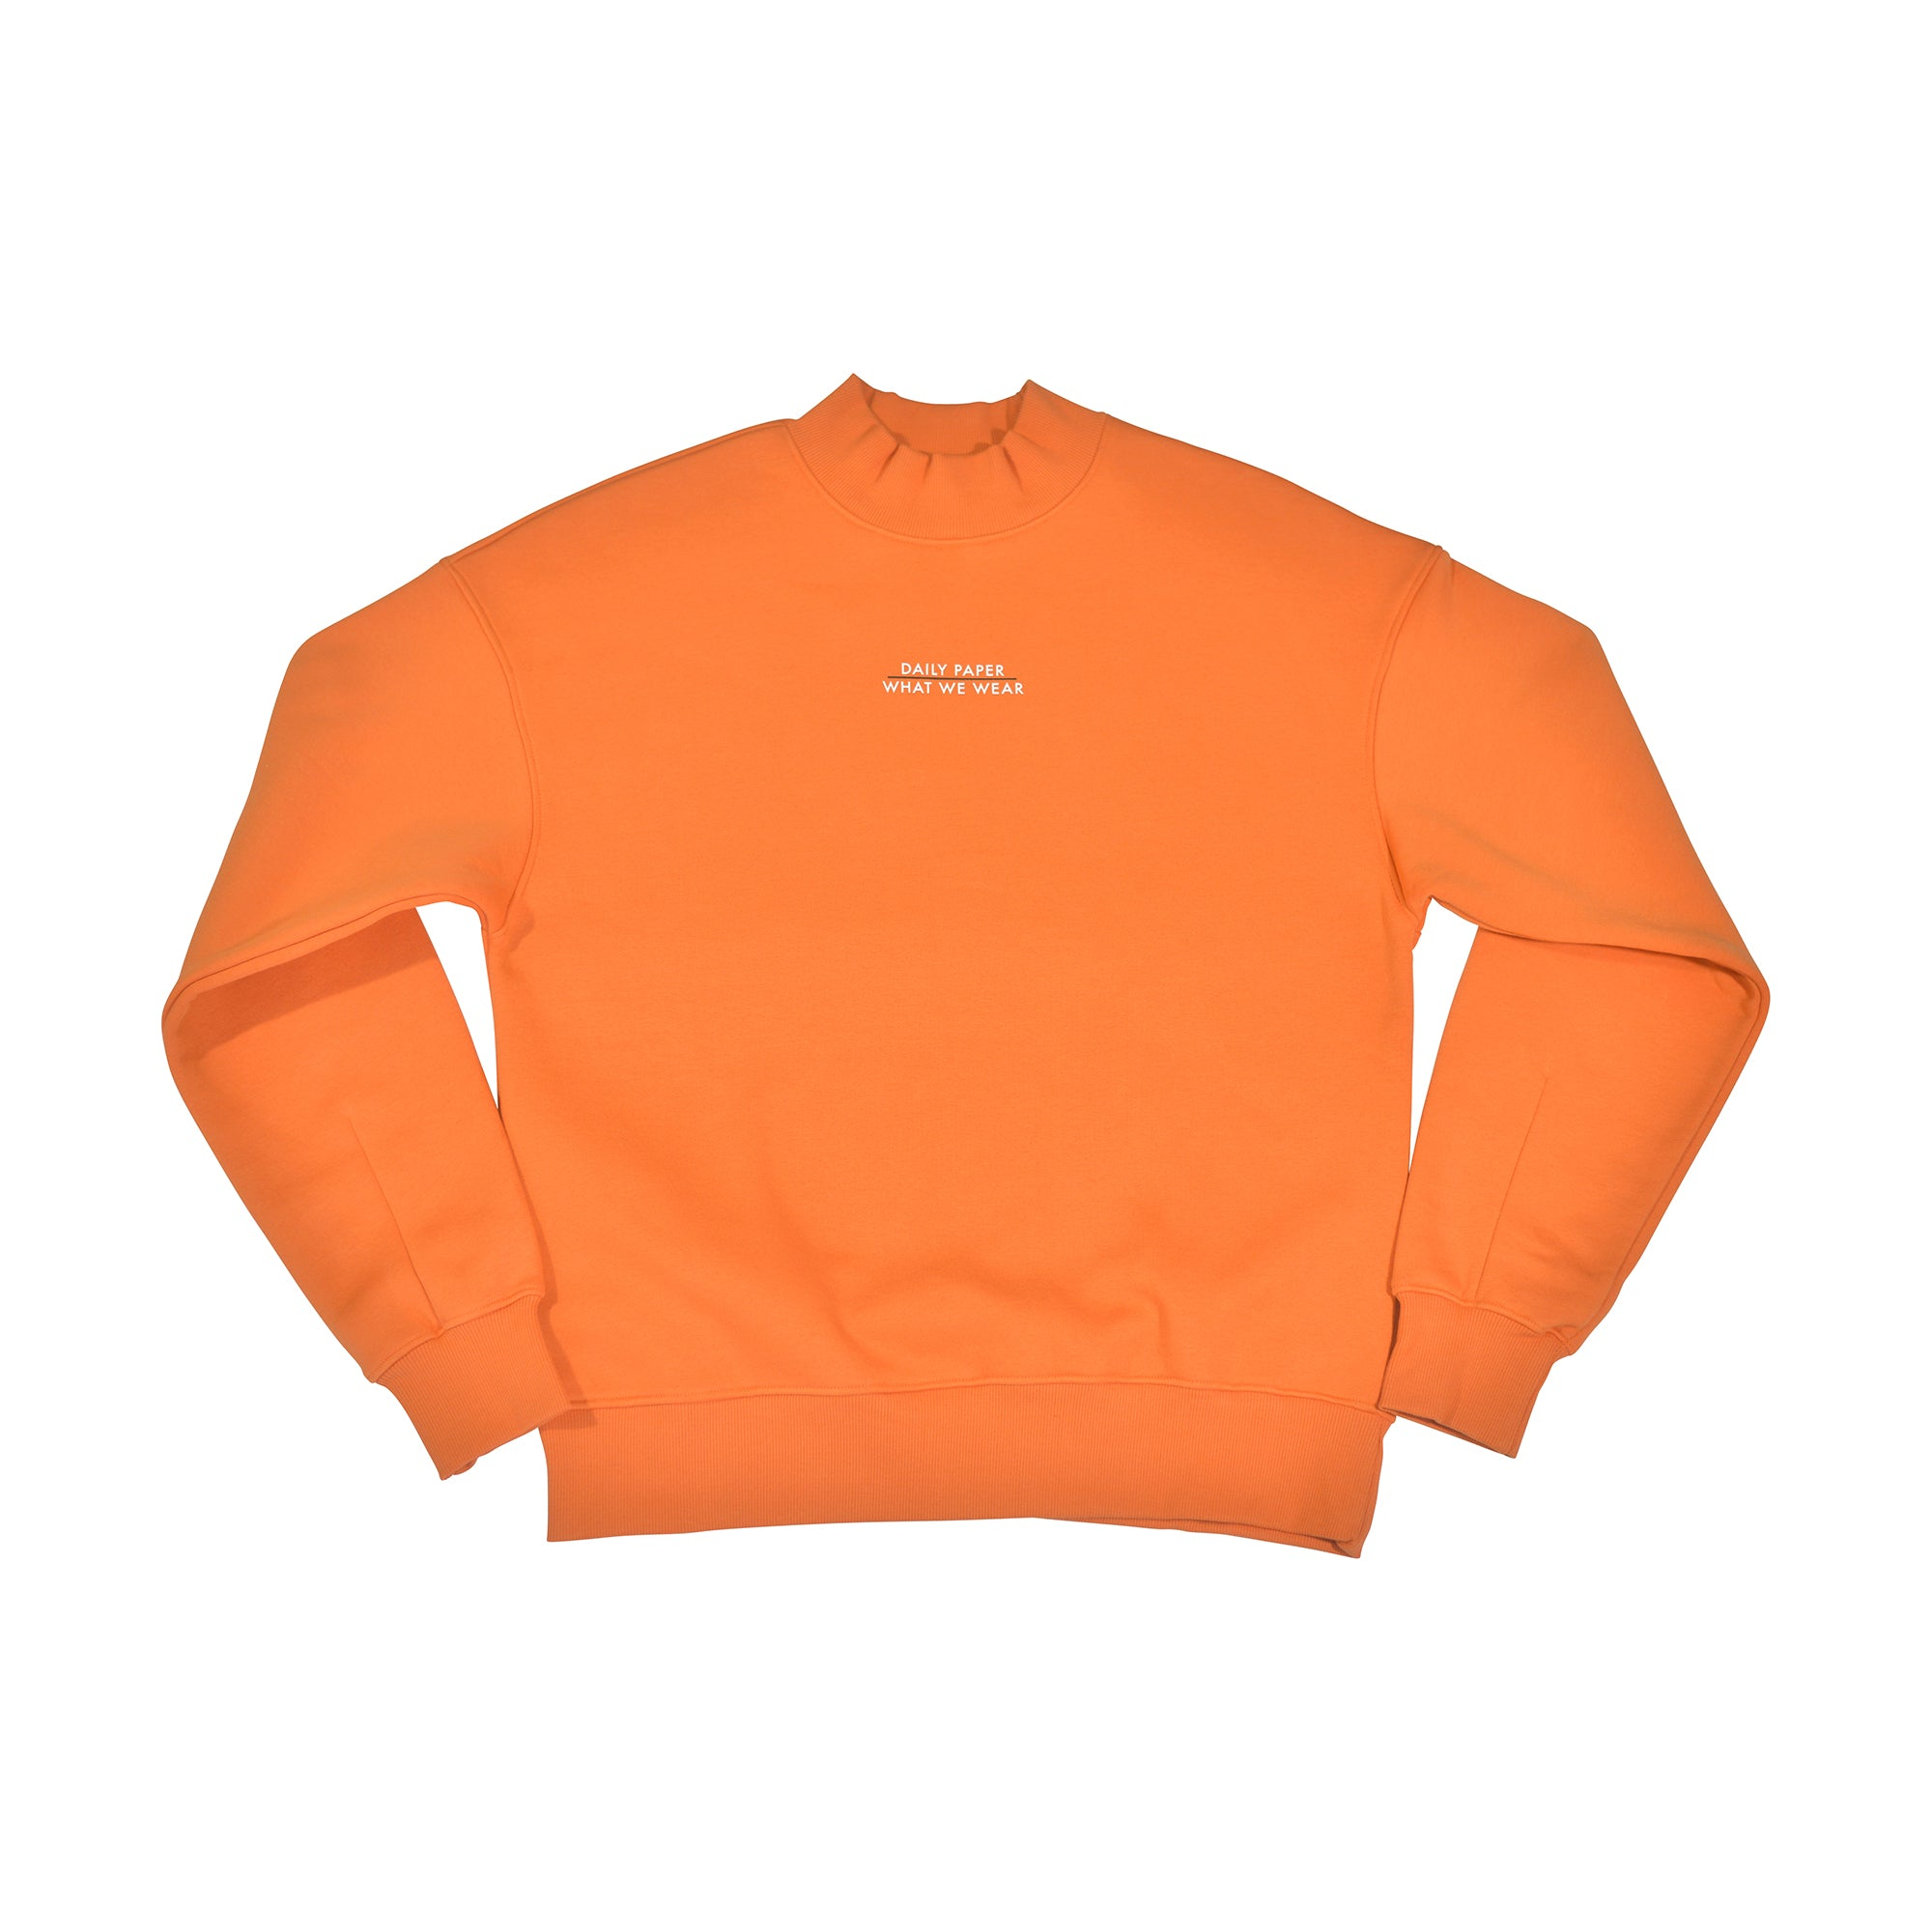 WWW x Daily Paper Orange Crew Jumper